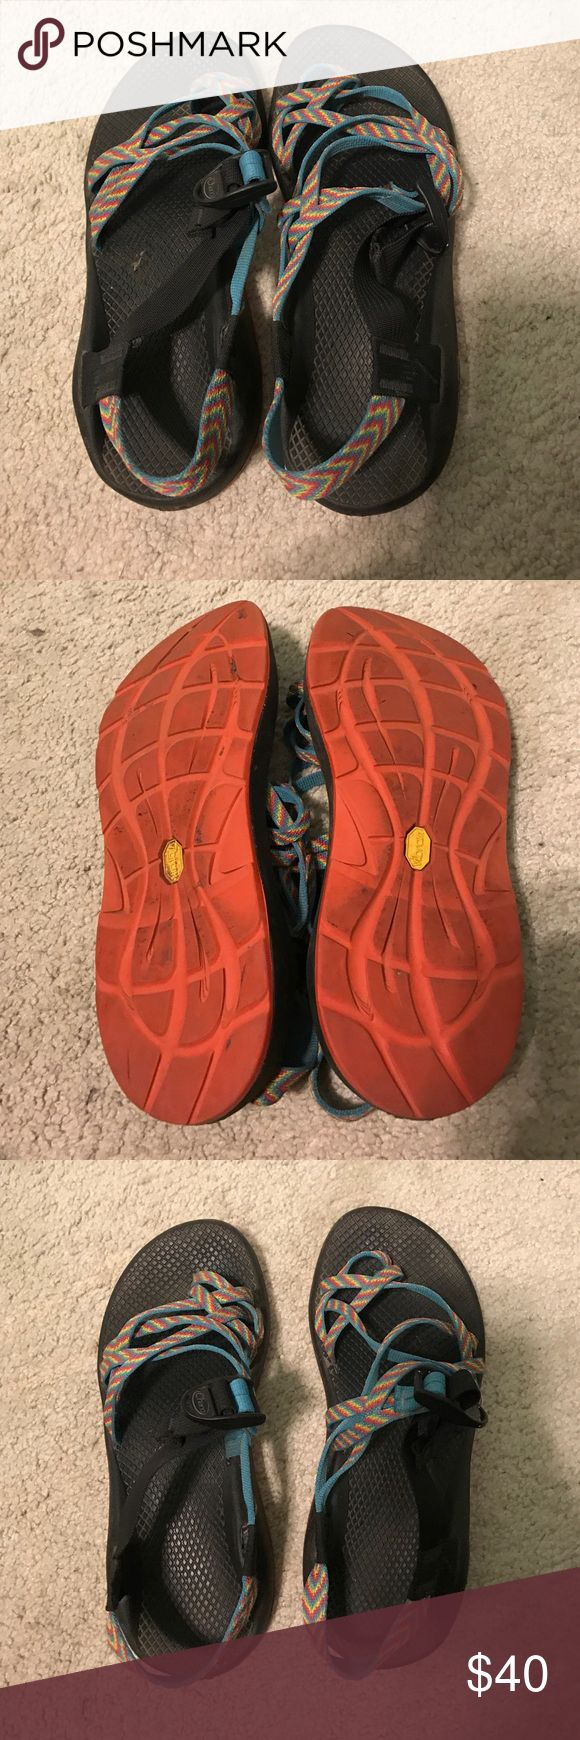 RAINBOW CHACOS Rainbow Chacos for sale..trying to clean out my closet. They are a little dirty but in great condition! Chaco Shoes